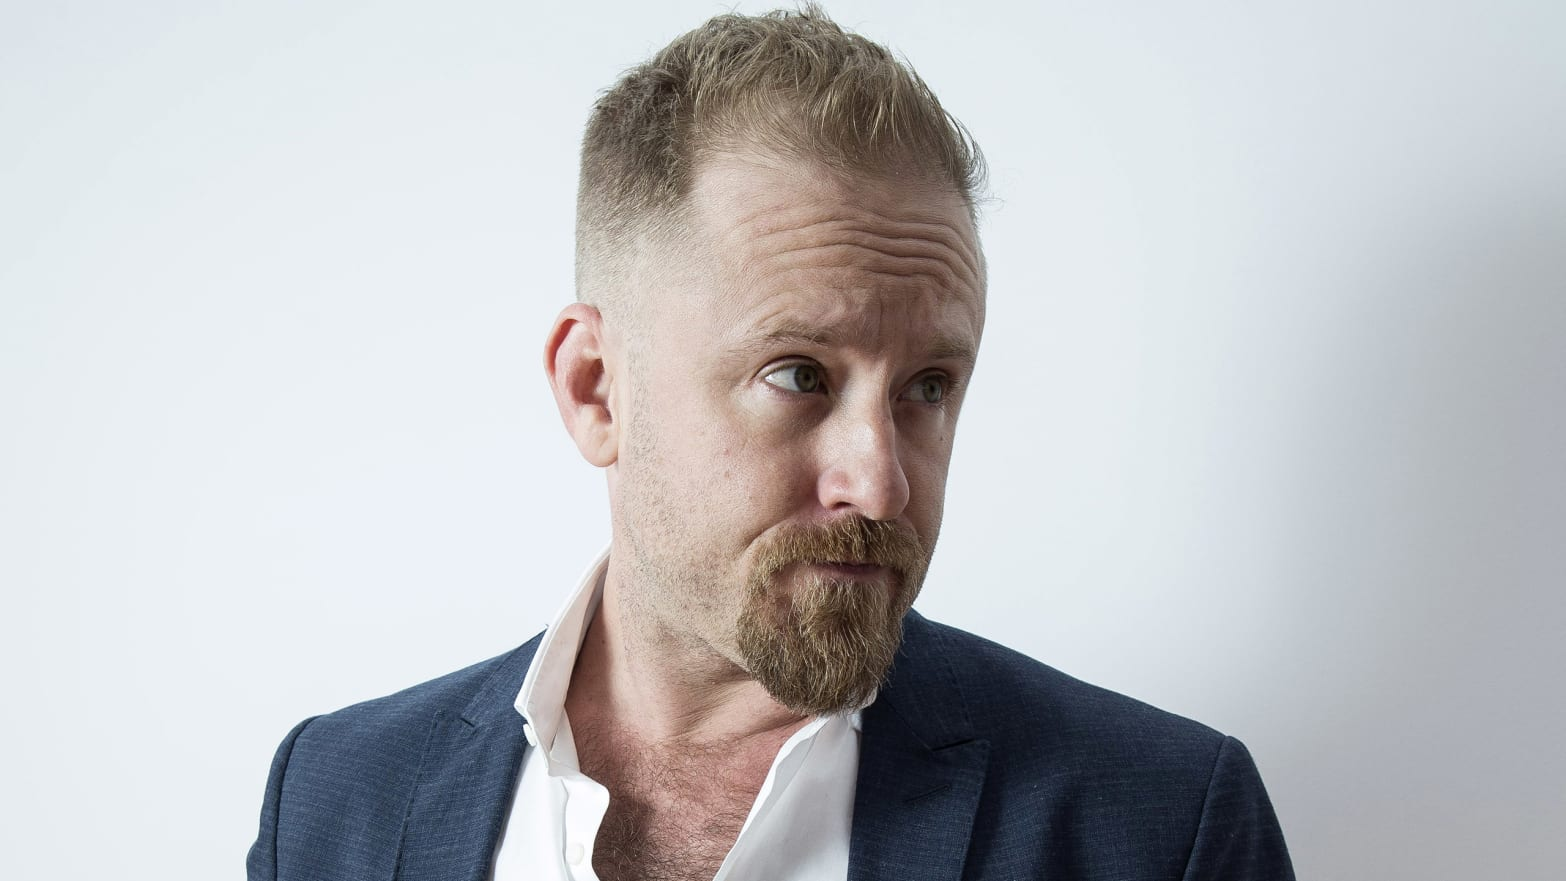 Ben Foster on His 'Culty' Upbringing and Finding Happiness